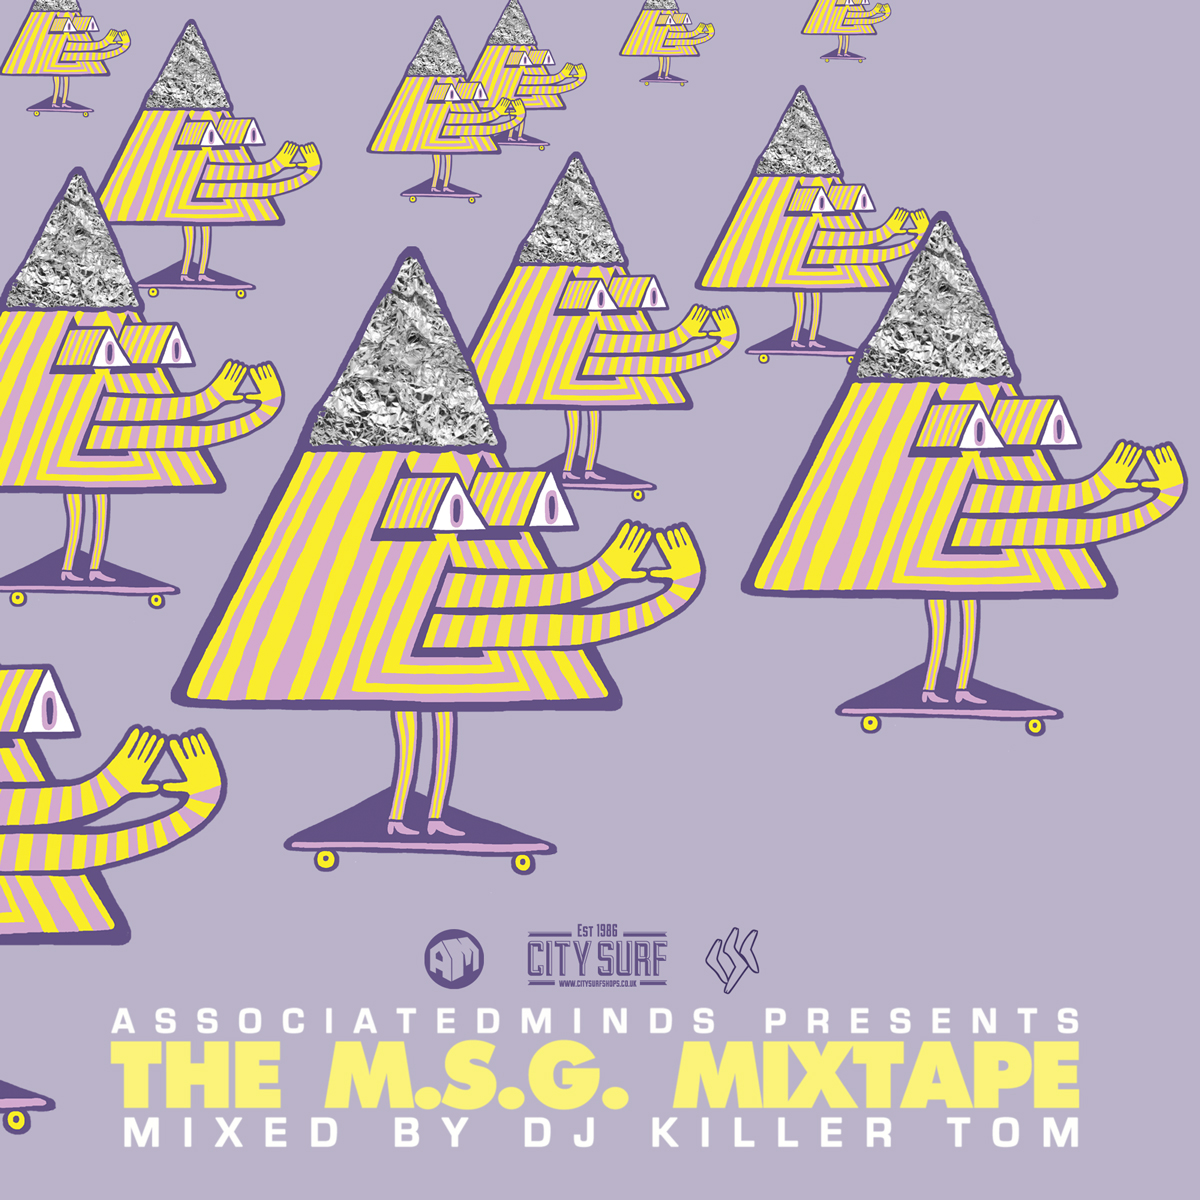 THE M.S.G. MIXTAPE